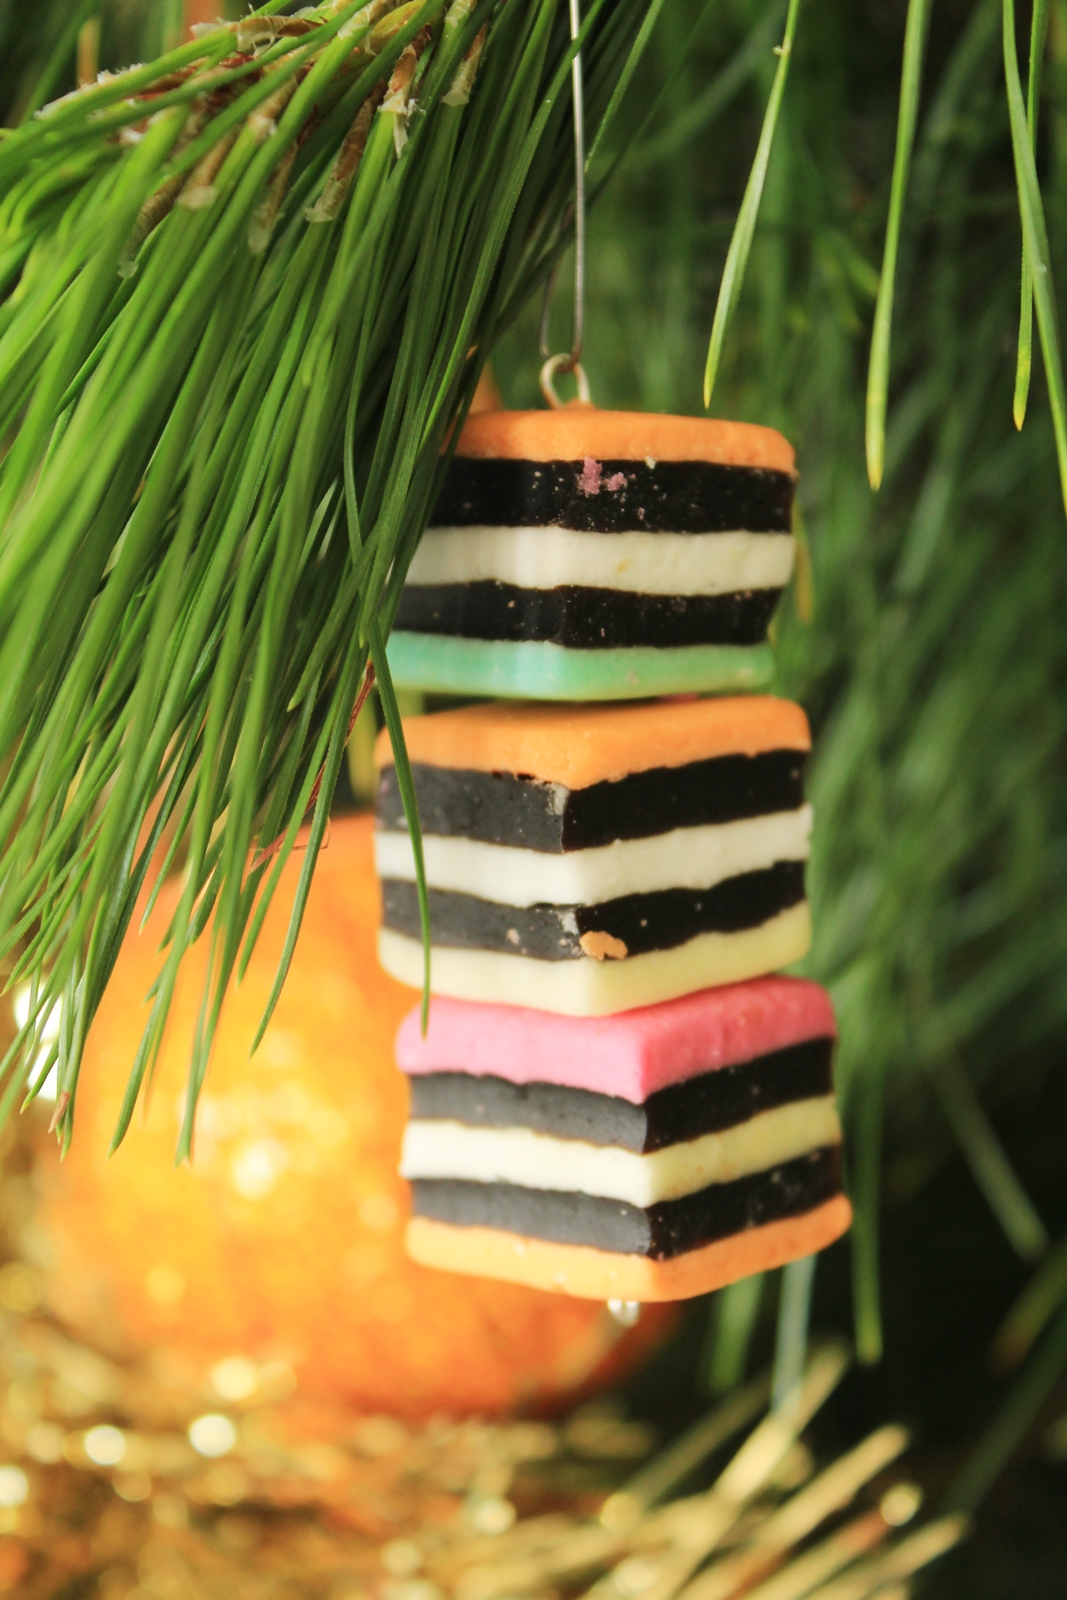 Licorice Allsort decoration